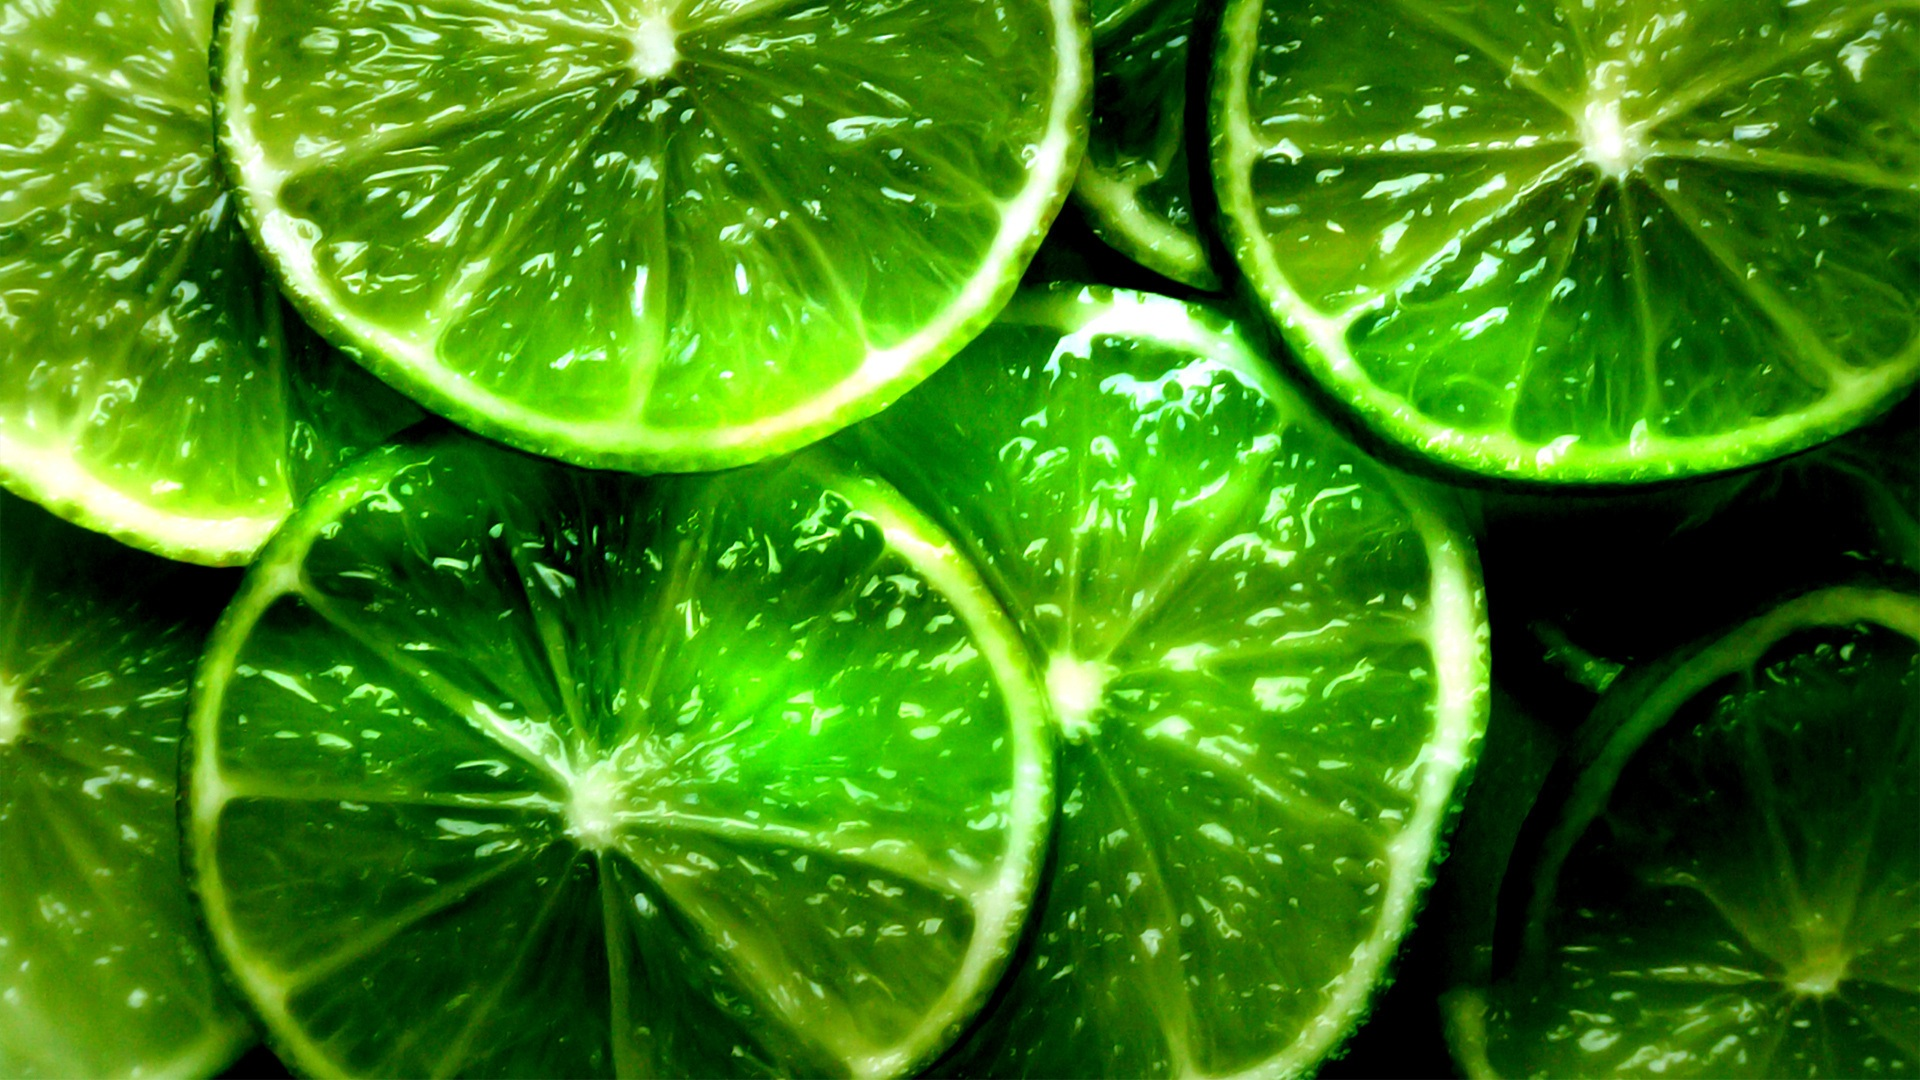 green hd background desktop backgrounds wallpapers lime food lemon